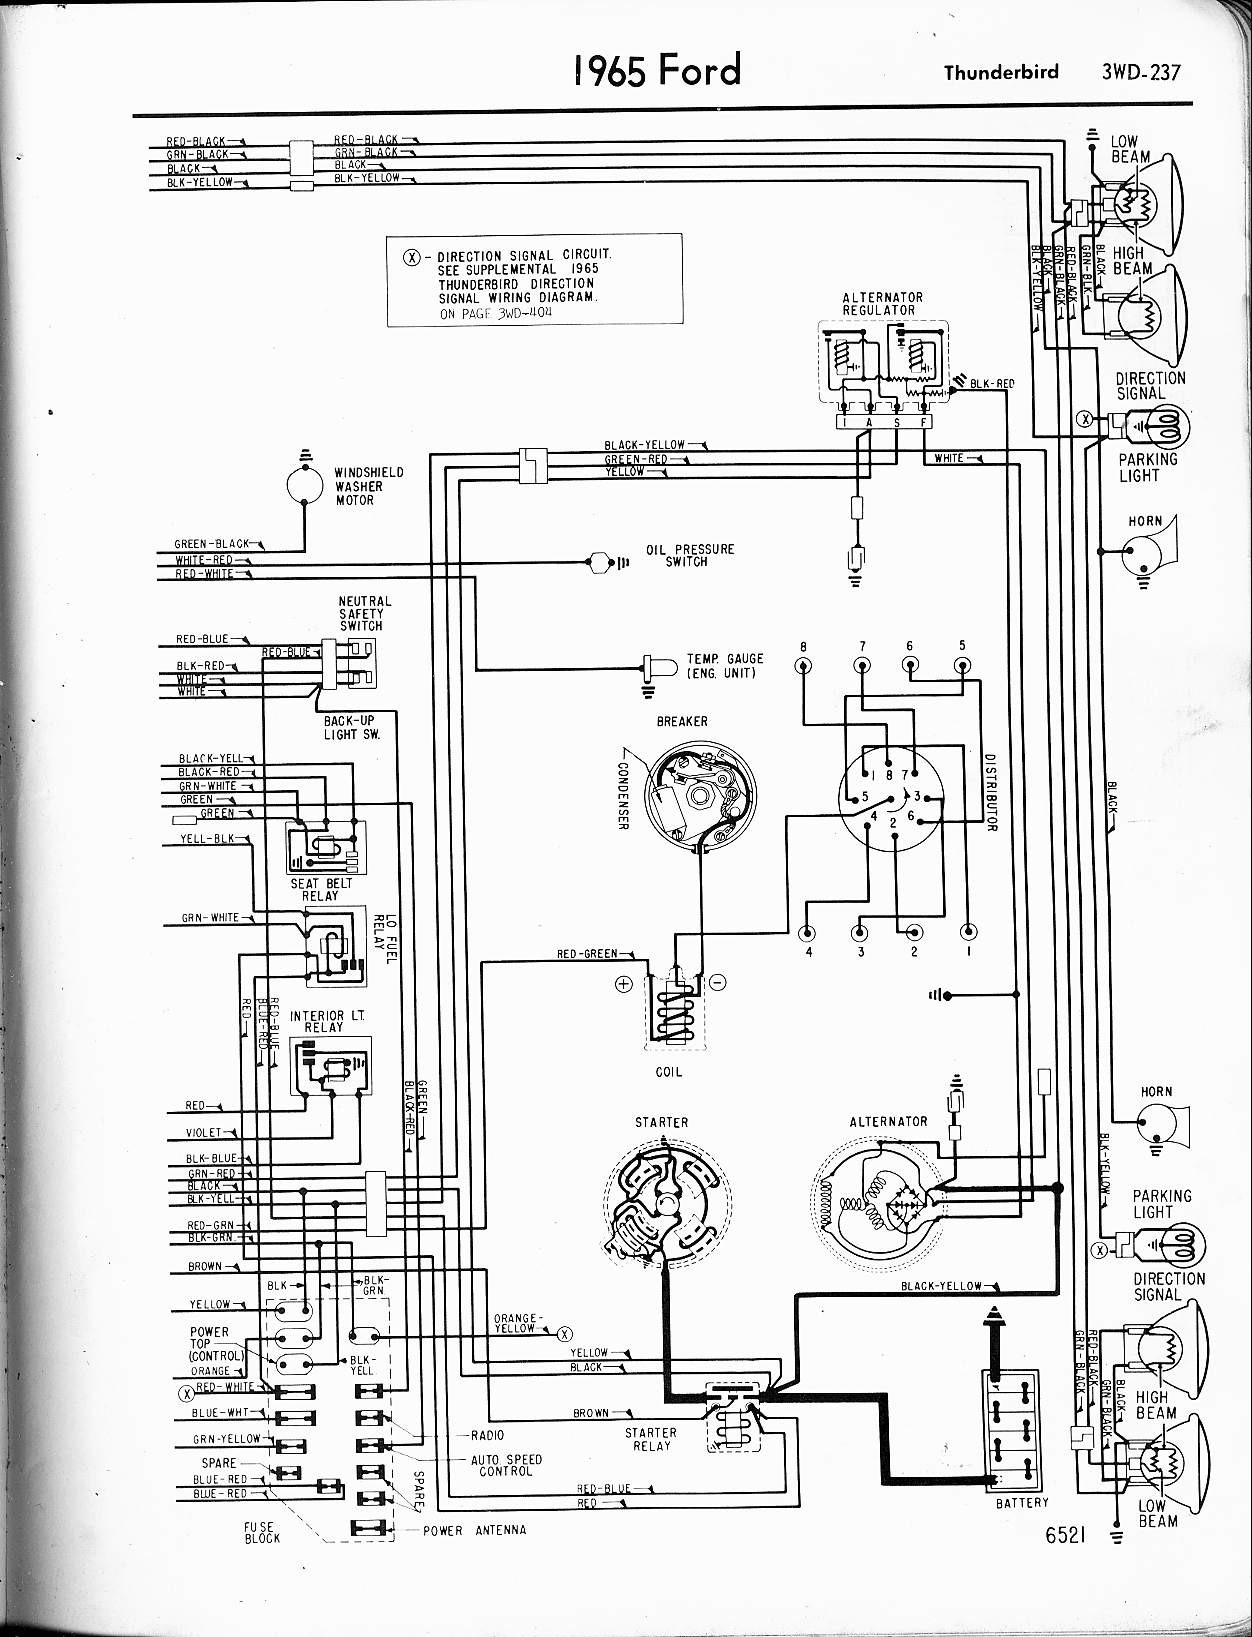 1965 Dodge Wiring Diagram Free Download Diagrams Table Lamp Schematics Schematic 2006 Charger Engine Library Rh 24 Codingcommunity De Ram Light